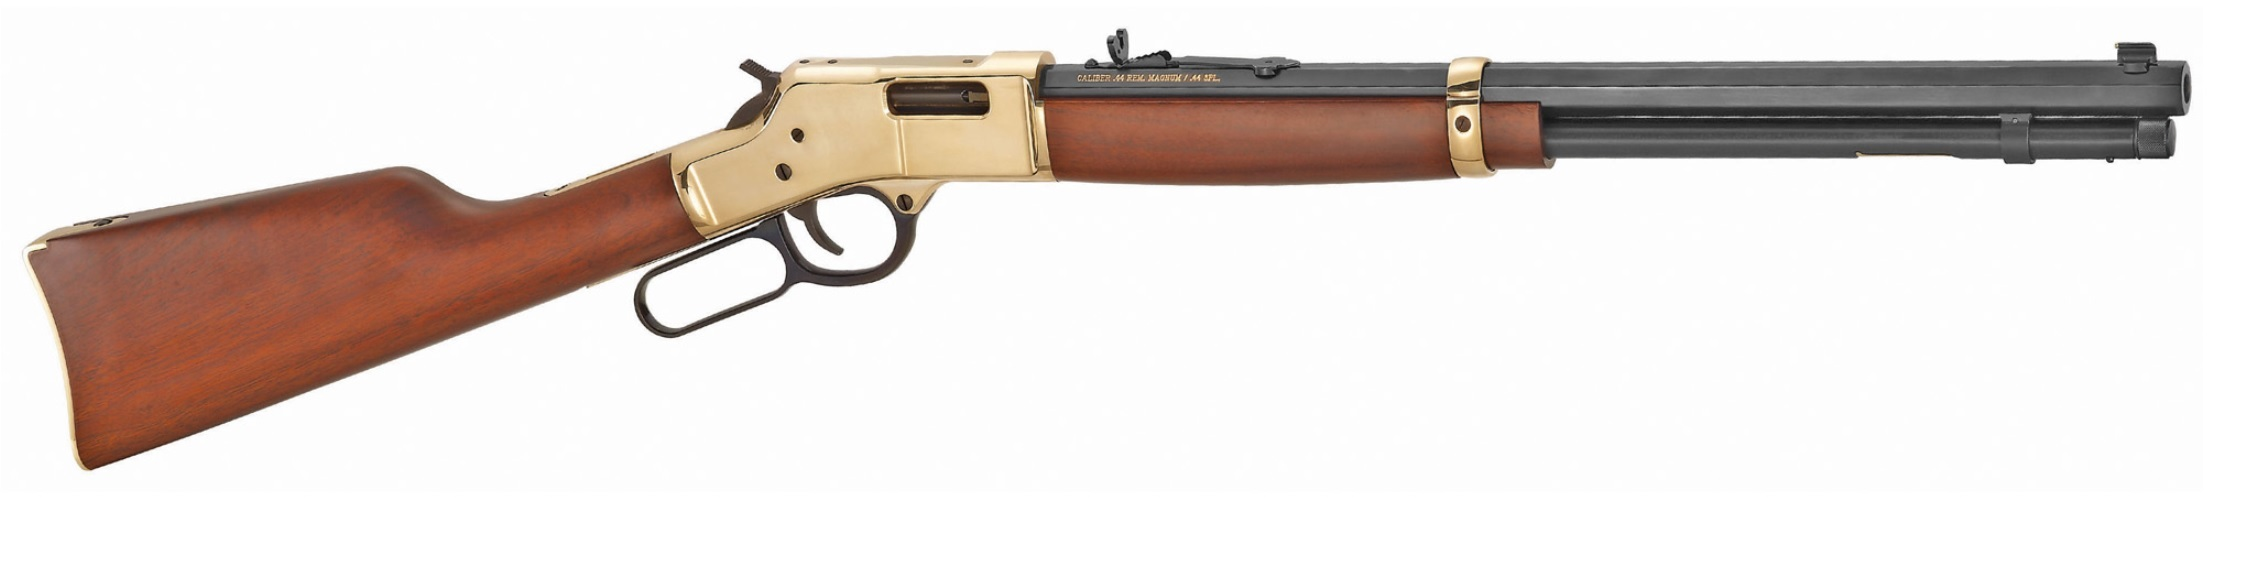 Model 1866 Lever Action Rifle